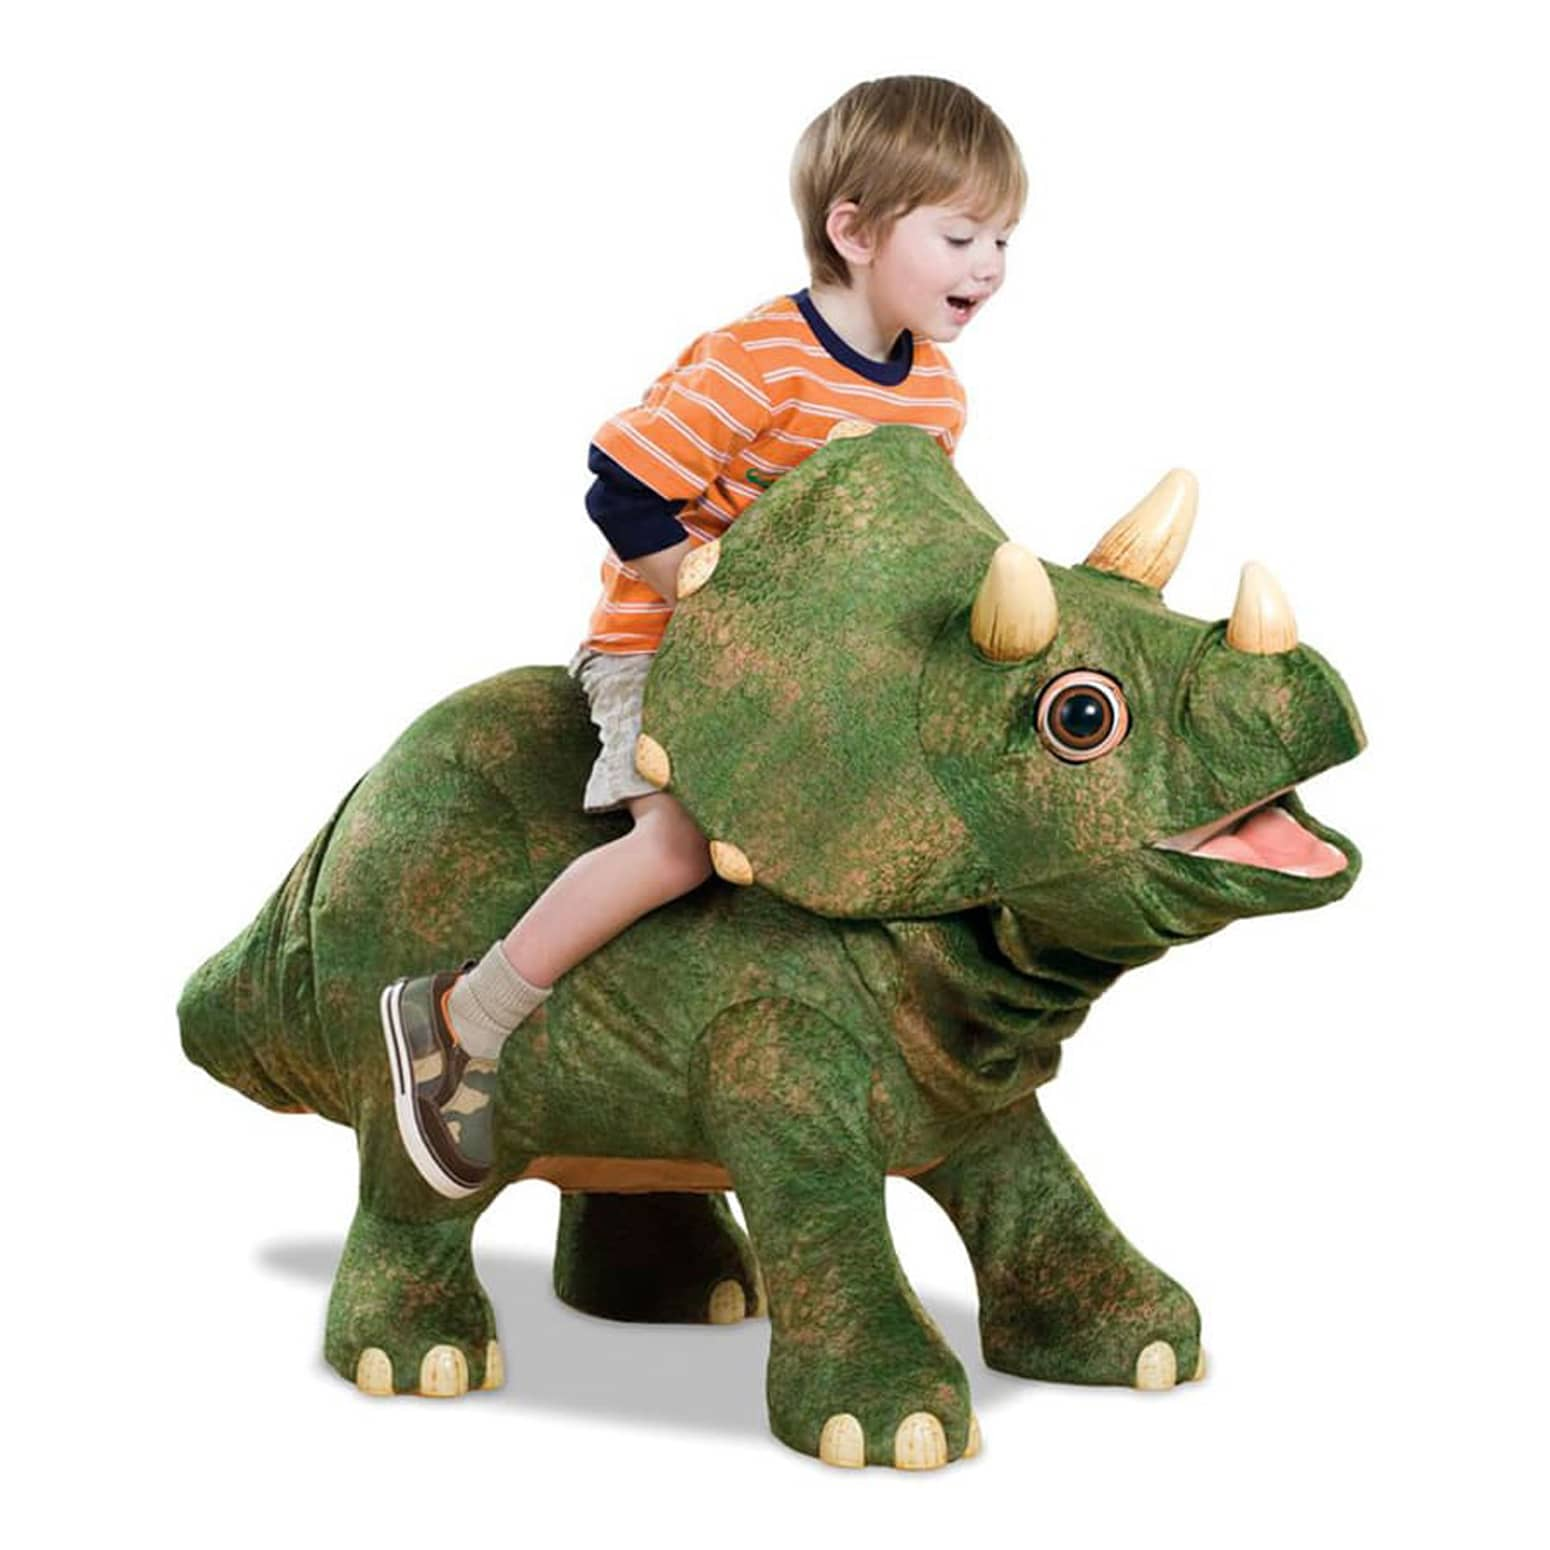 Kota the Robotic Triceratops Dinosaur